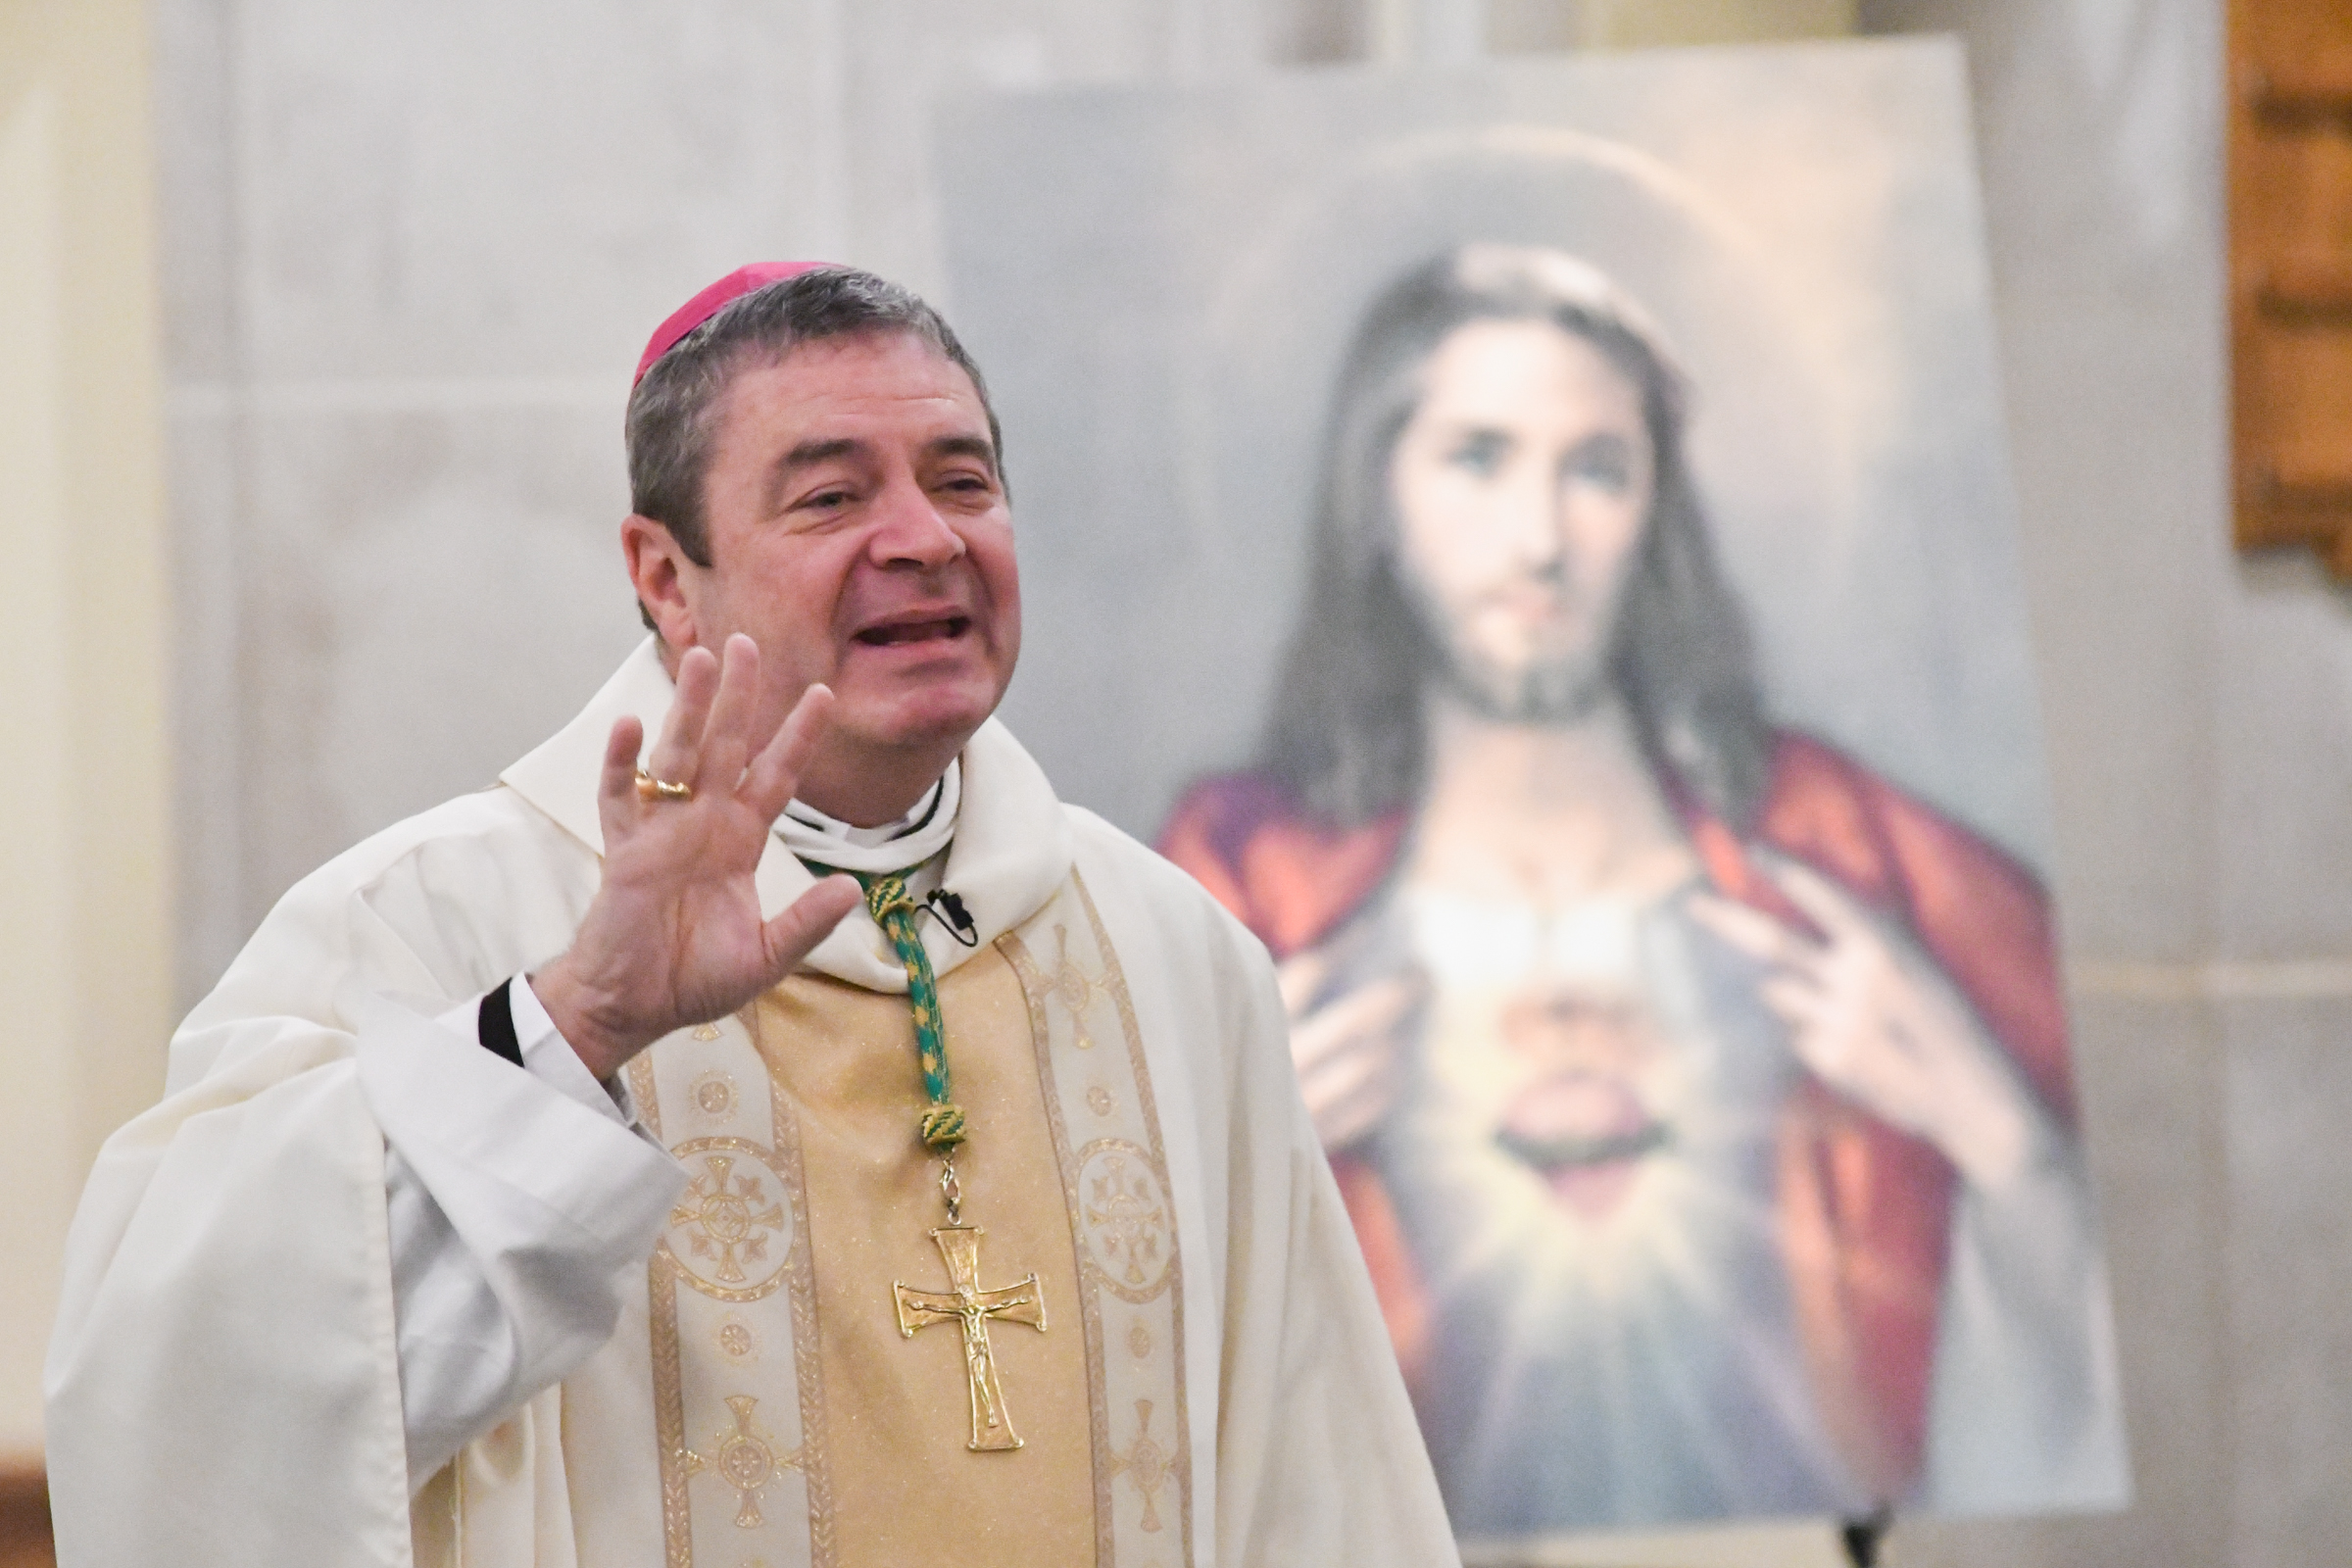 Bishop Brennan at the 2019 Sacred Heart Congress